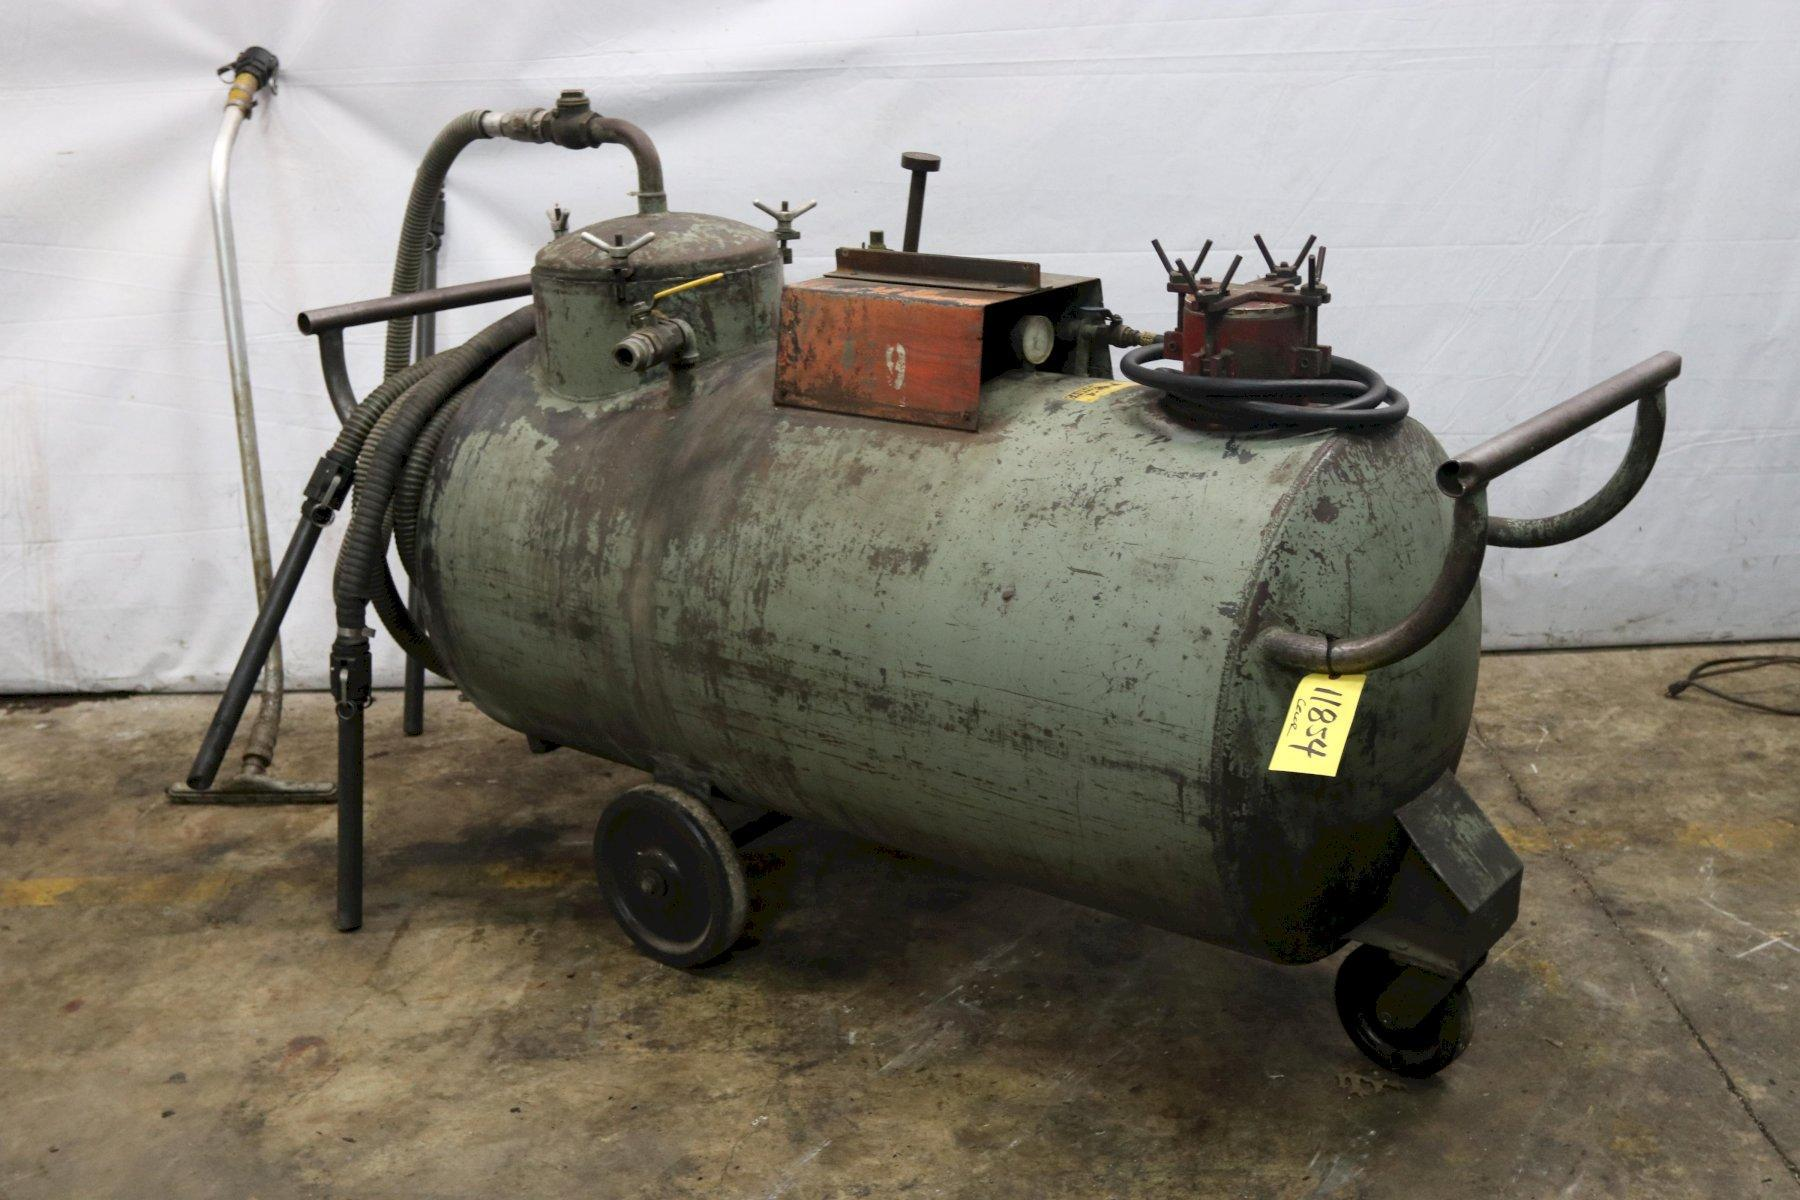 200 GALLON CECOR PORTABLE SUMP CLEANER WITH PNEUMATIC ARO CENTRIFUGAL PUMP: STOCK 11854